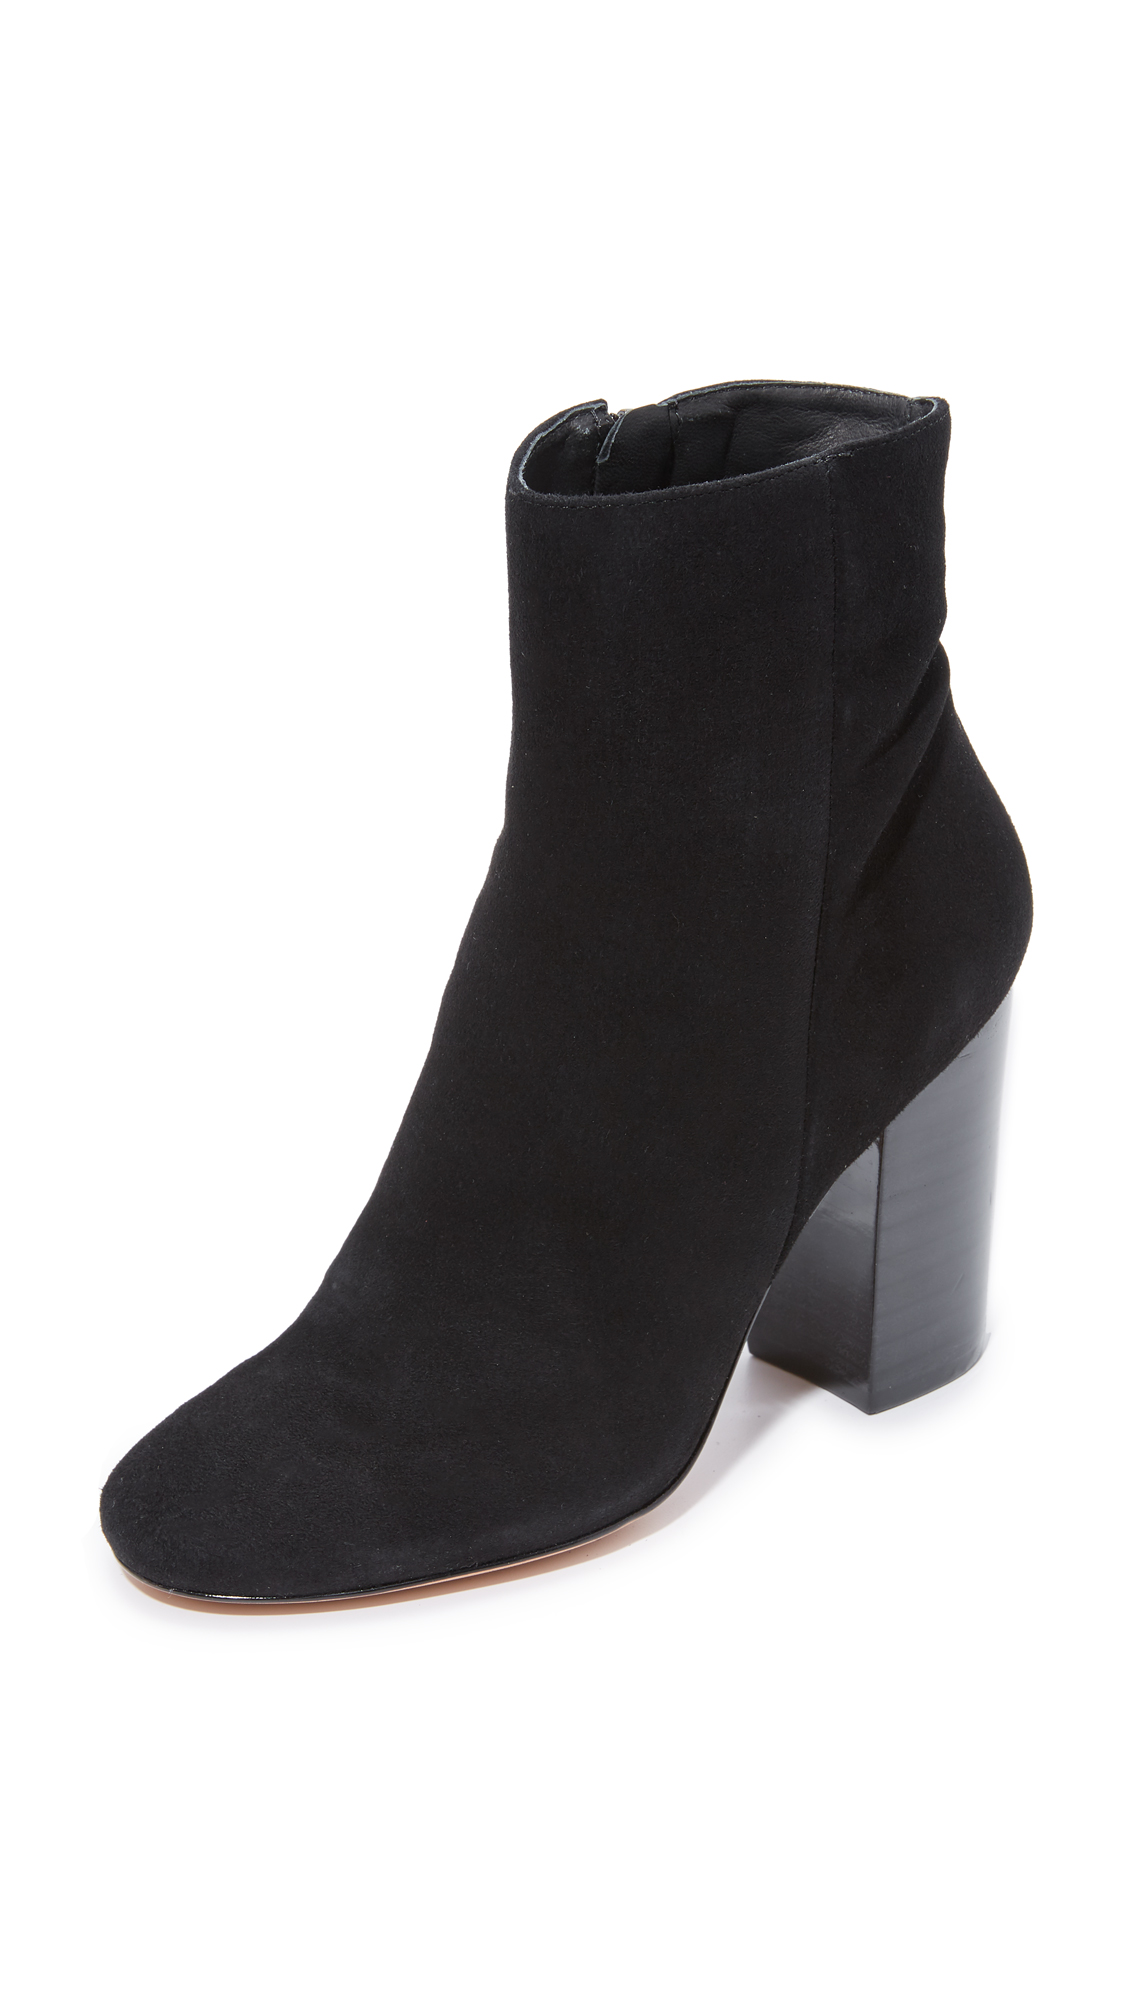 Schutz Ravan Booties - Black